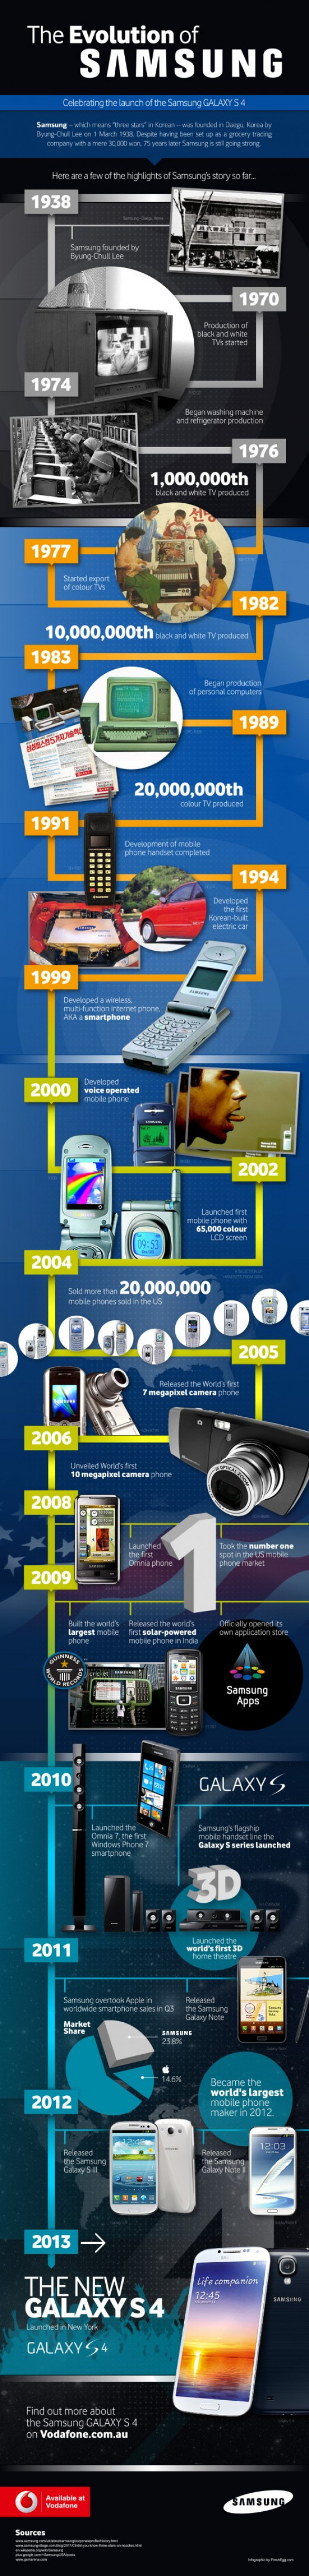 Evolution Of Samsung Then And Now [INFOGRAPHIC]